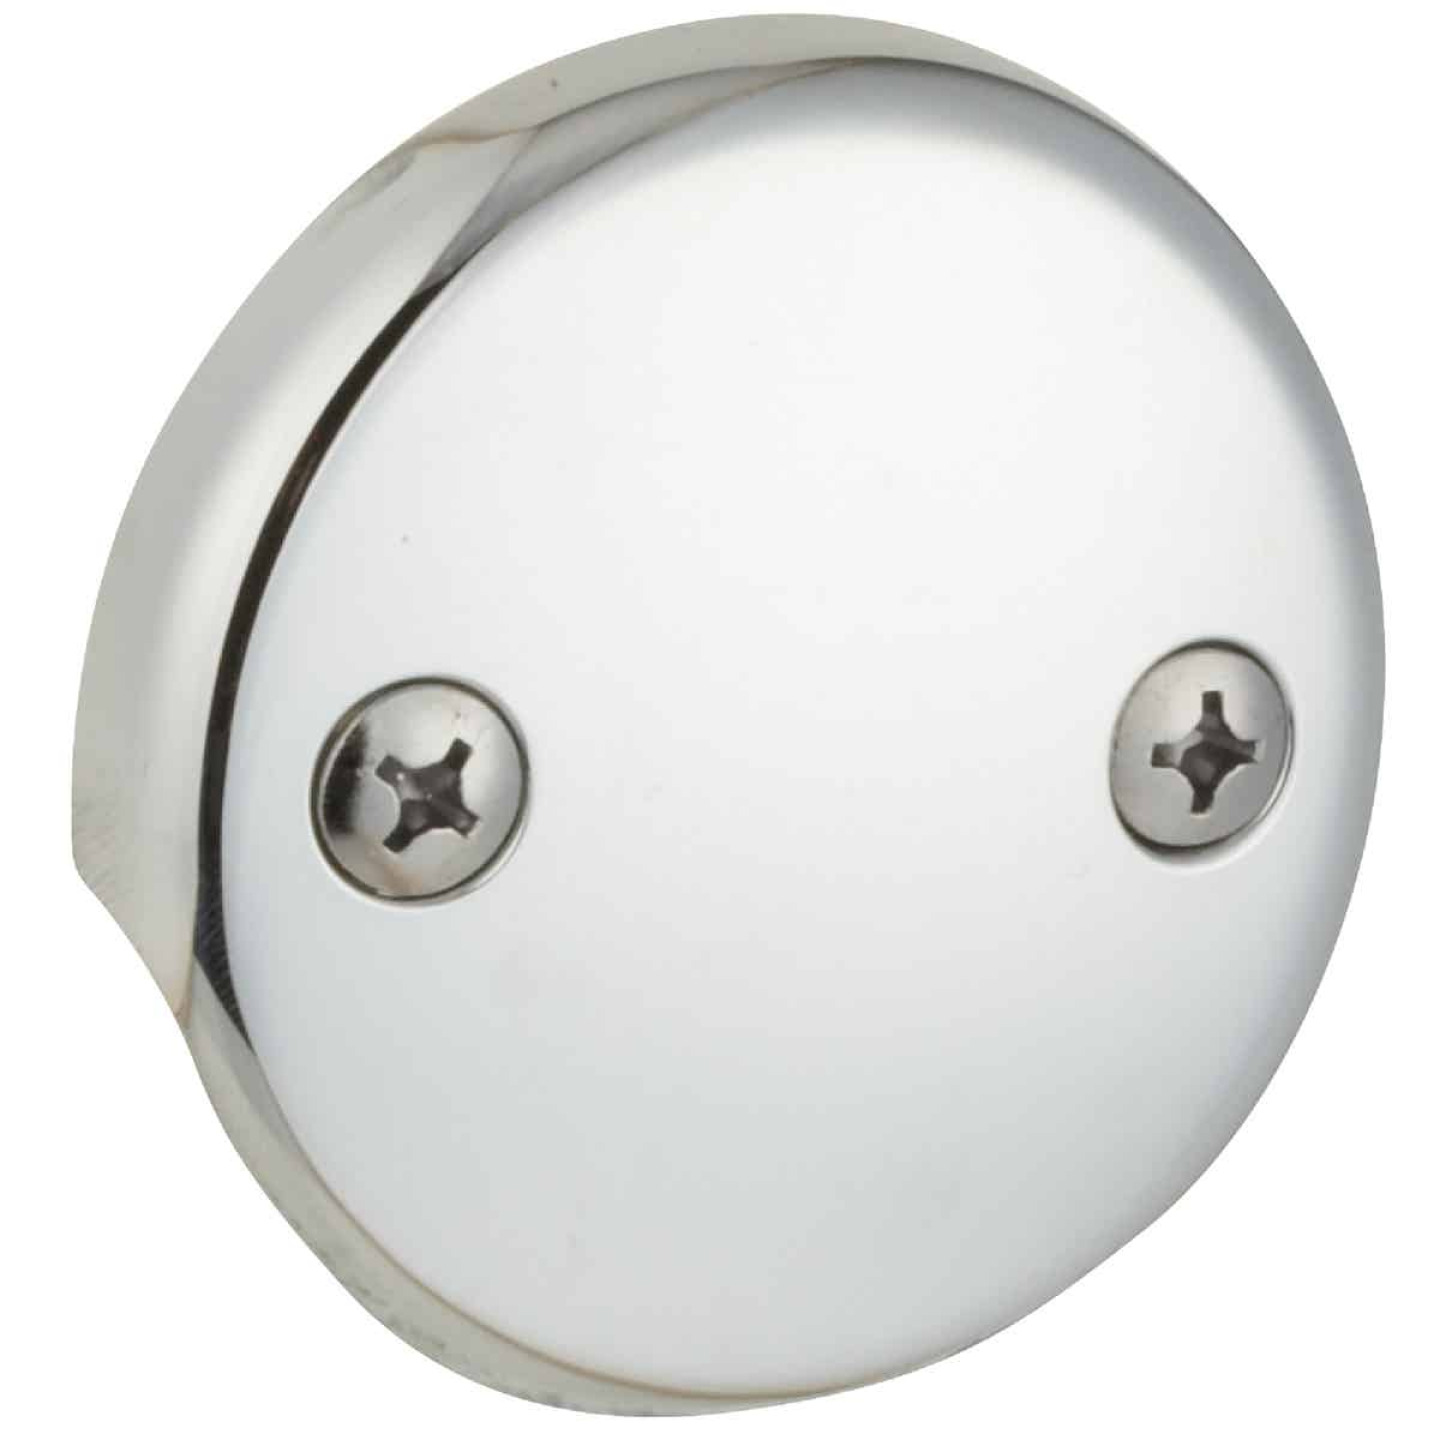 Do it Two-Hole Chrome Bath Drain Face Plate Image 1